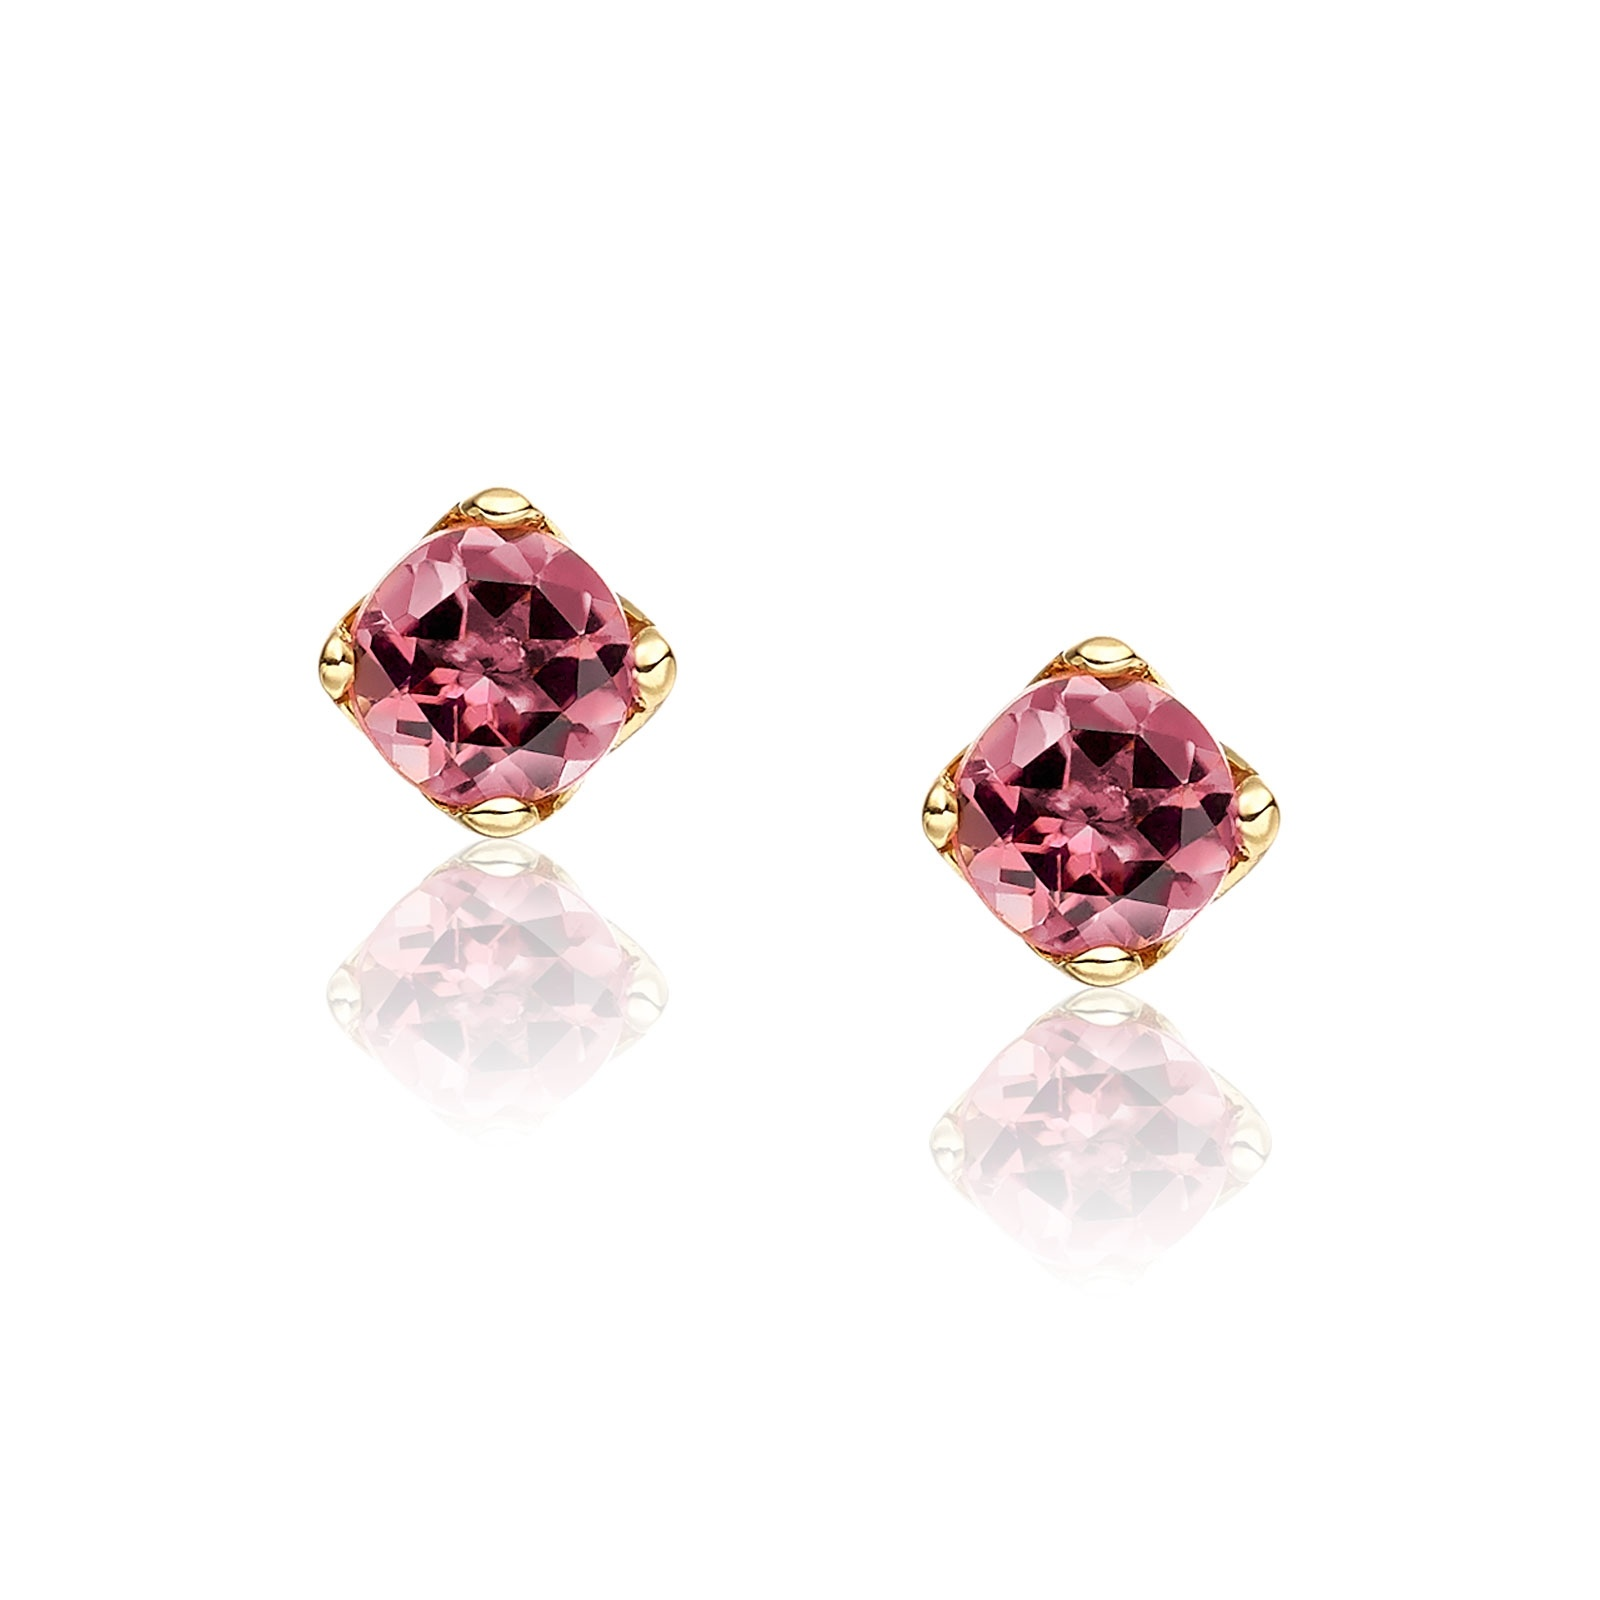 Lief Pink Tourmaline Studs in Yellow Gold-EAPTYG0427-1